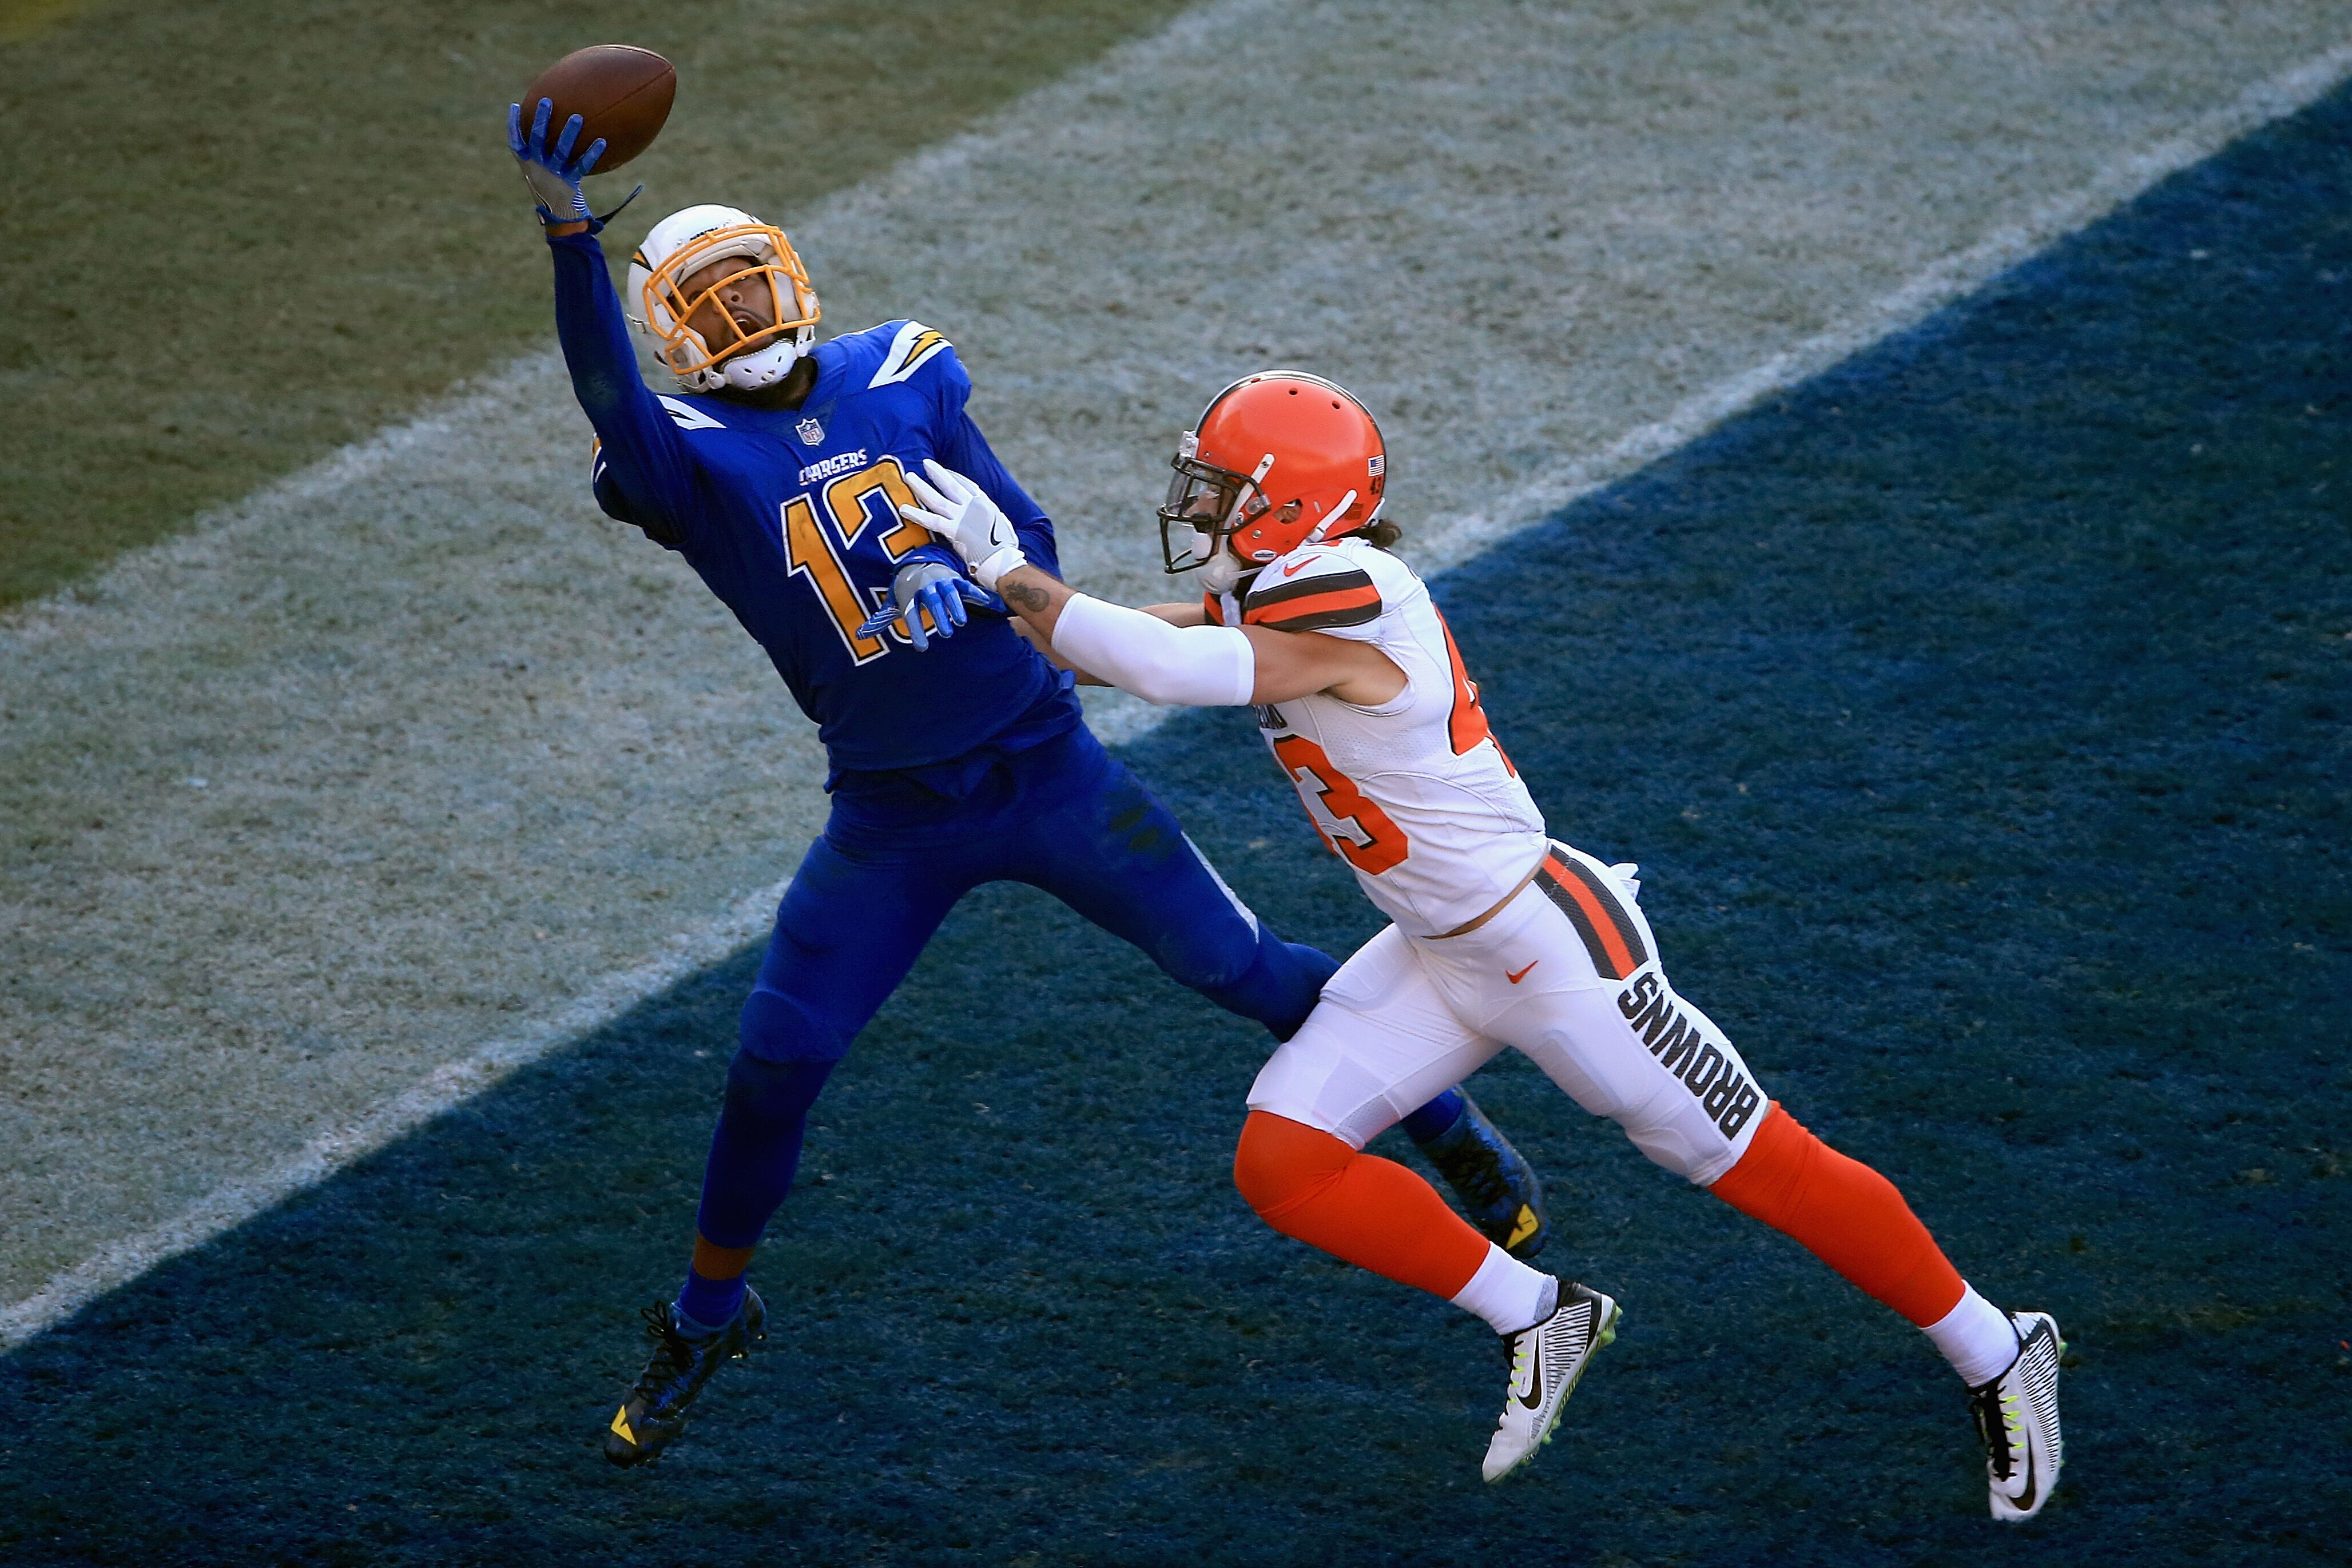 884975706-cleveland-browns-va-los-angeles-charger.jpg